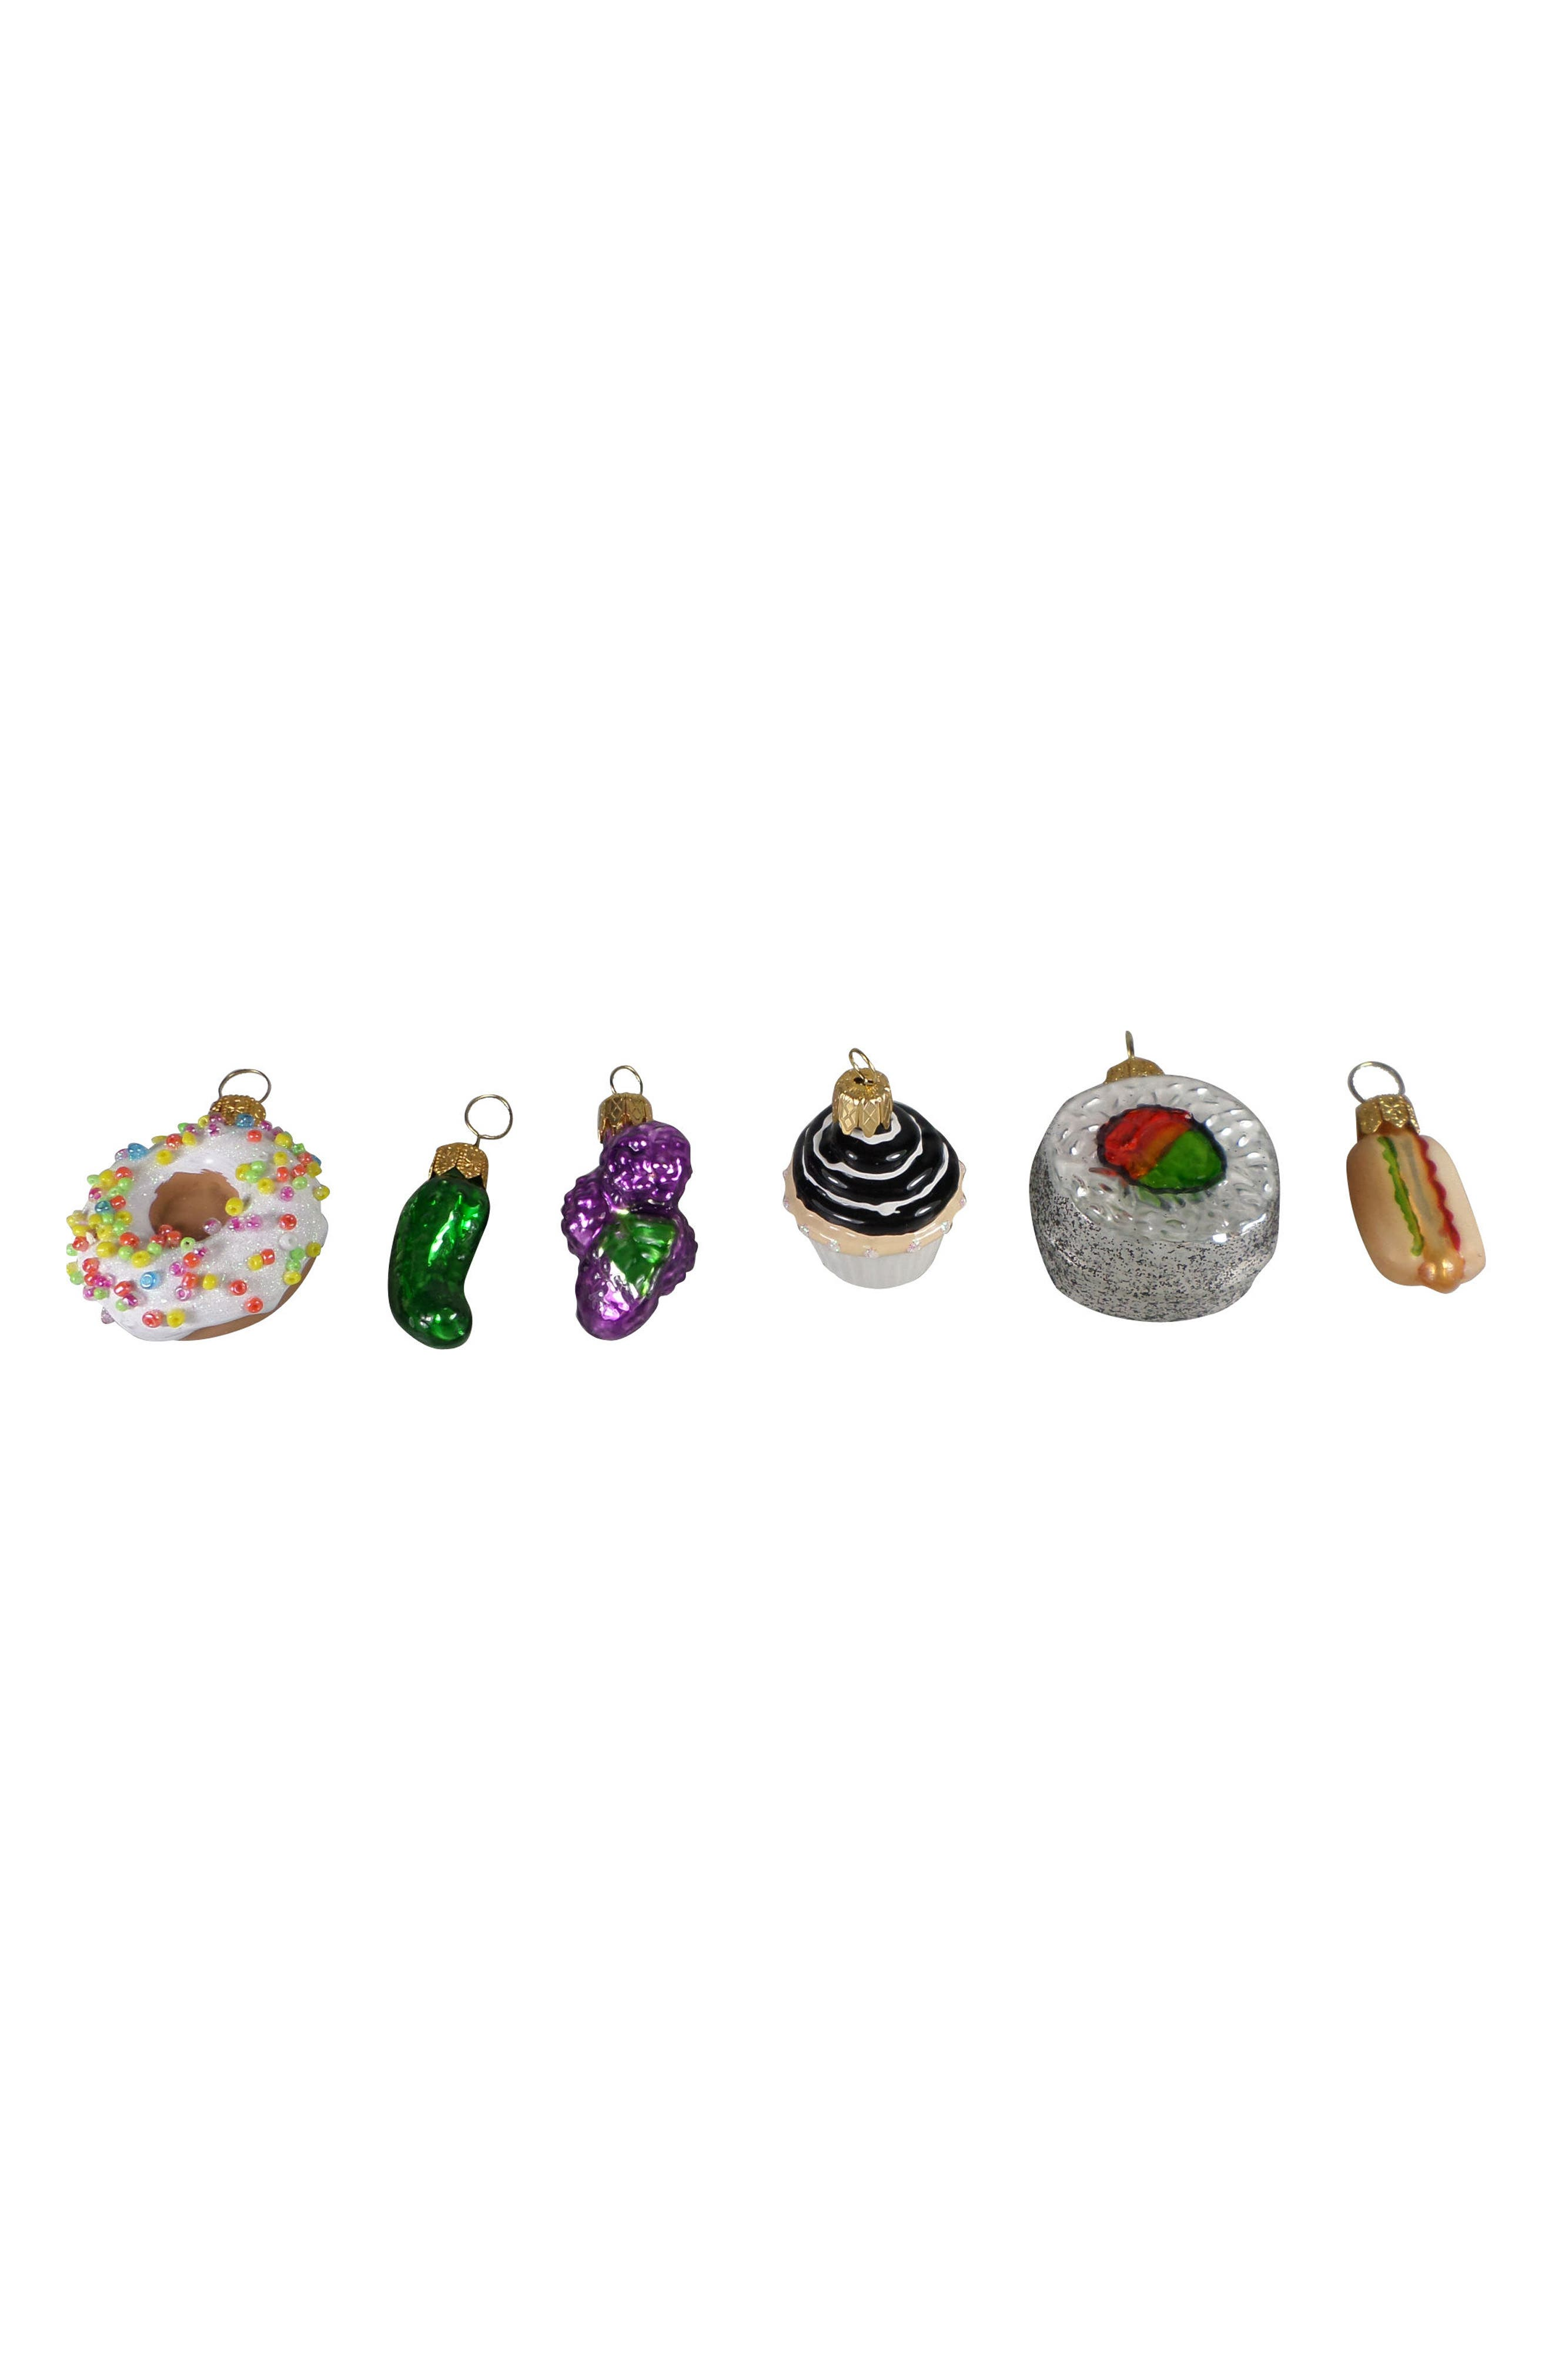 Nordstrom at Home Set of 6 Mini Handblown Glass Food Ornaments